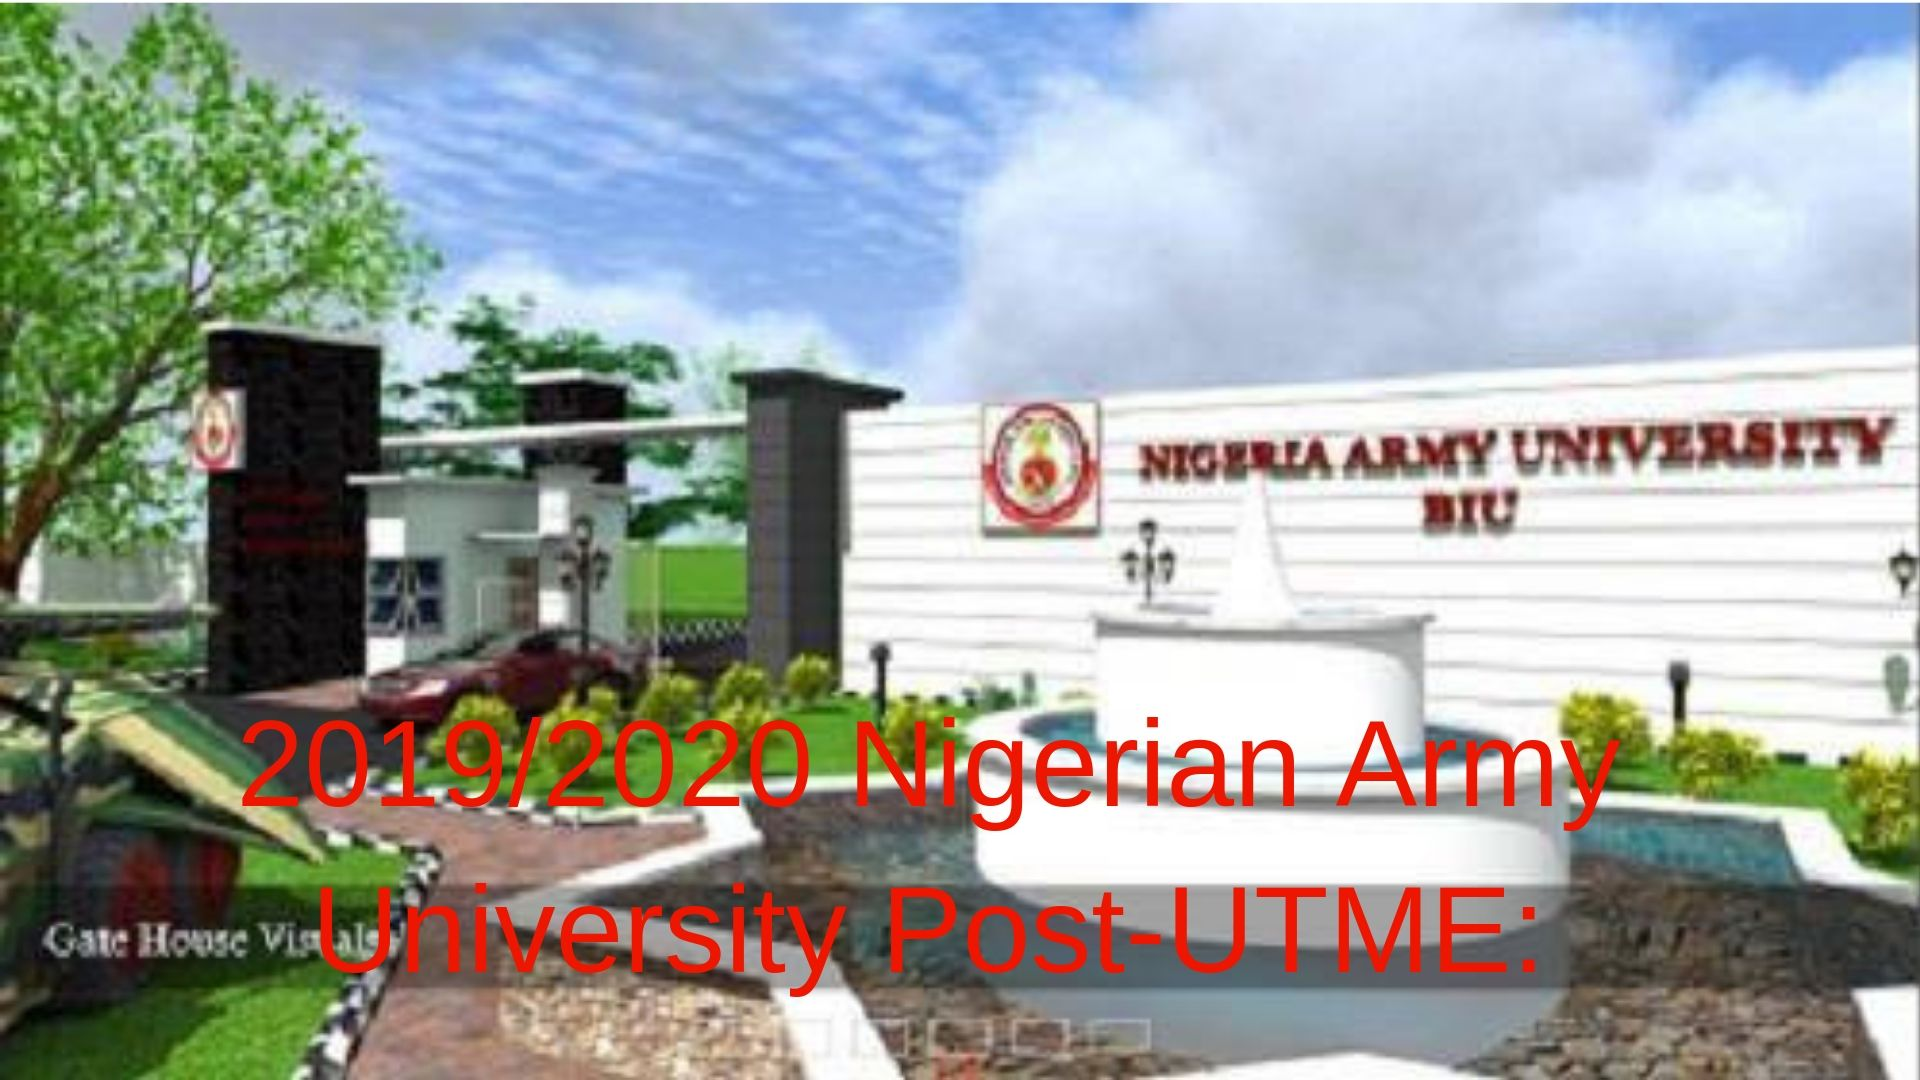 2019/2020 Nigerian Army University Post-UTME: Cut-off mark, Eligibility and Registration Details